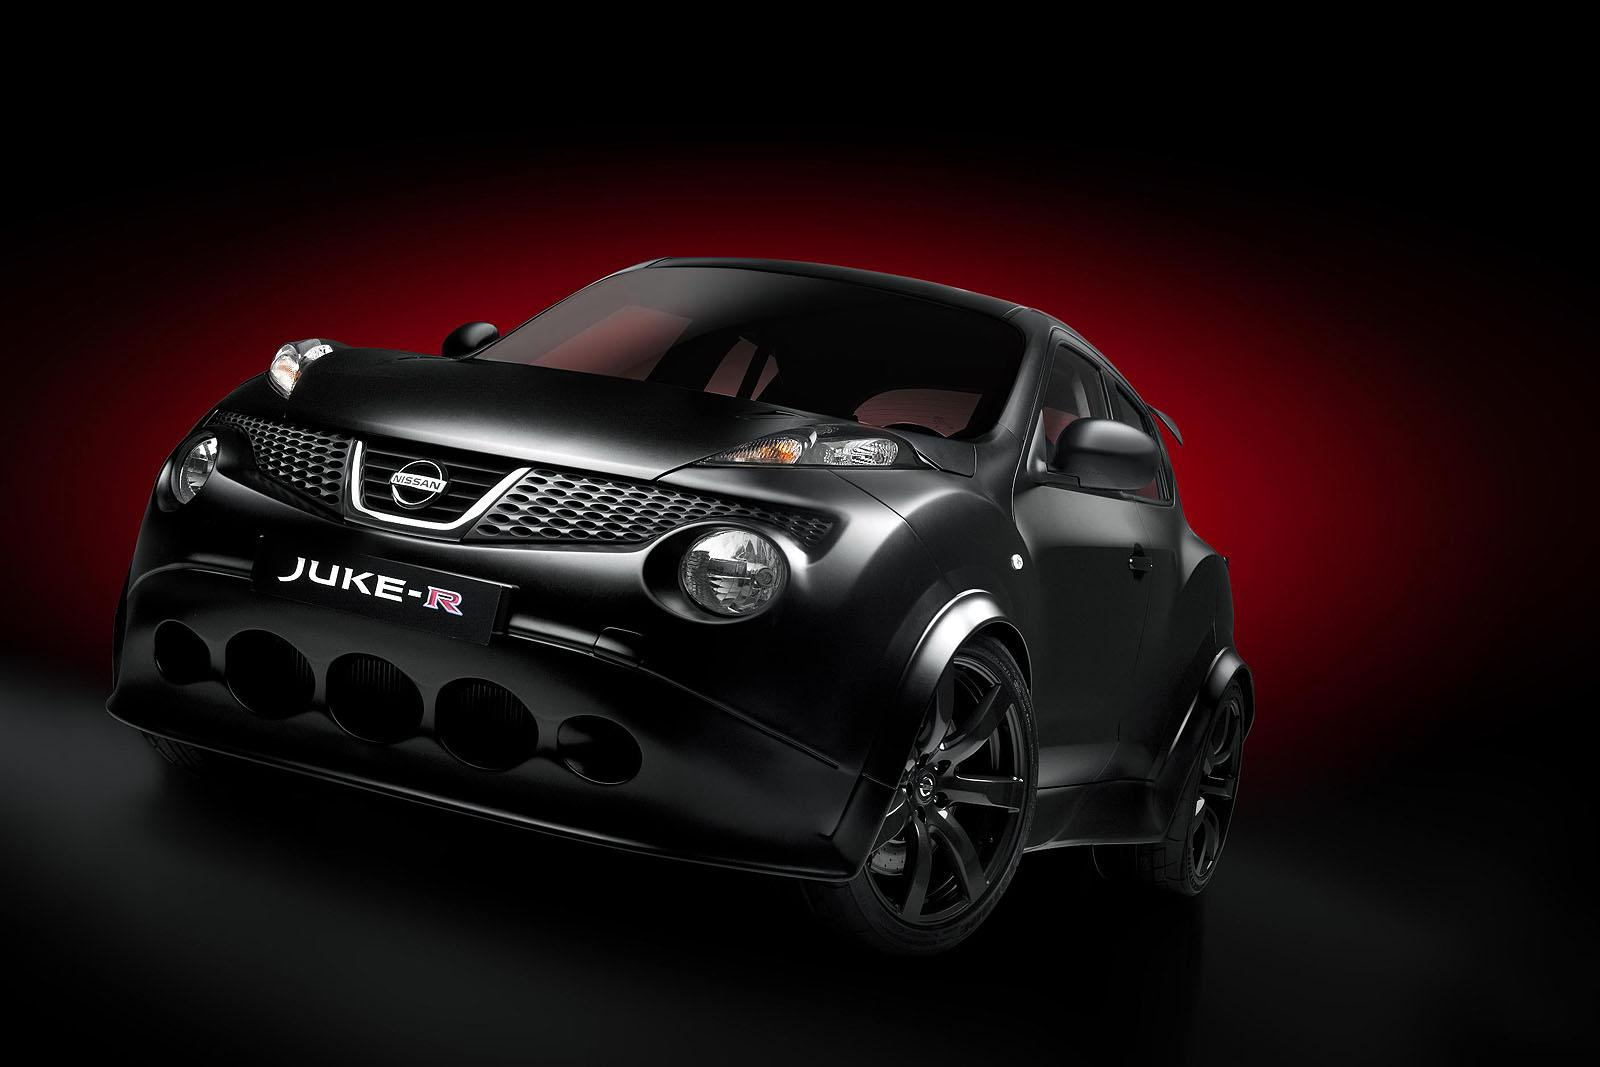 Nissan Juke-R Testing Begins This Month – New Build Images/Promotional Videos